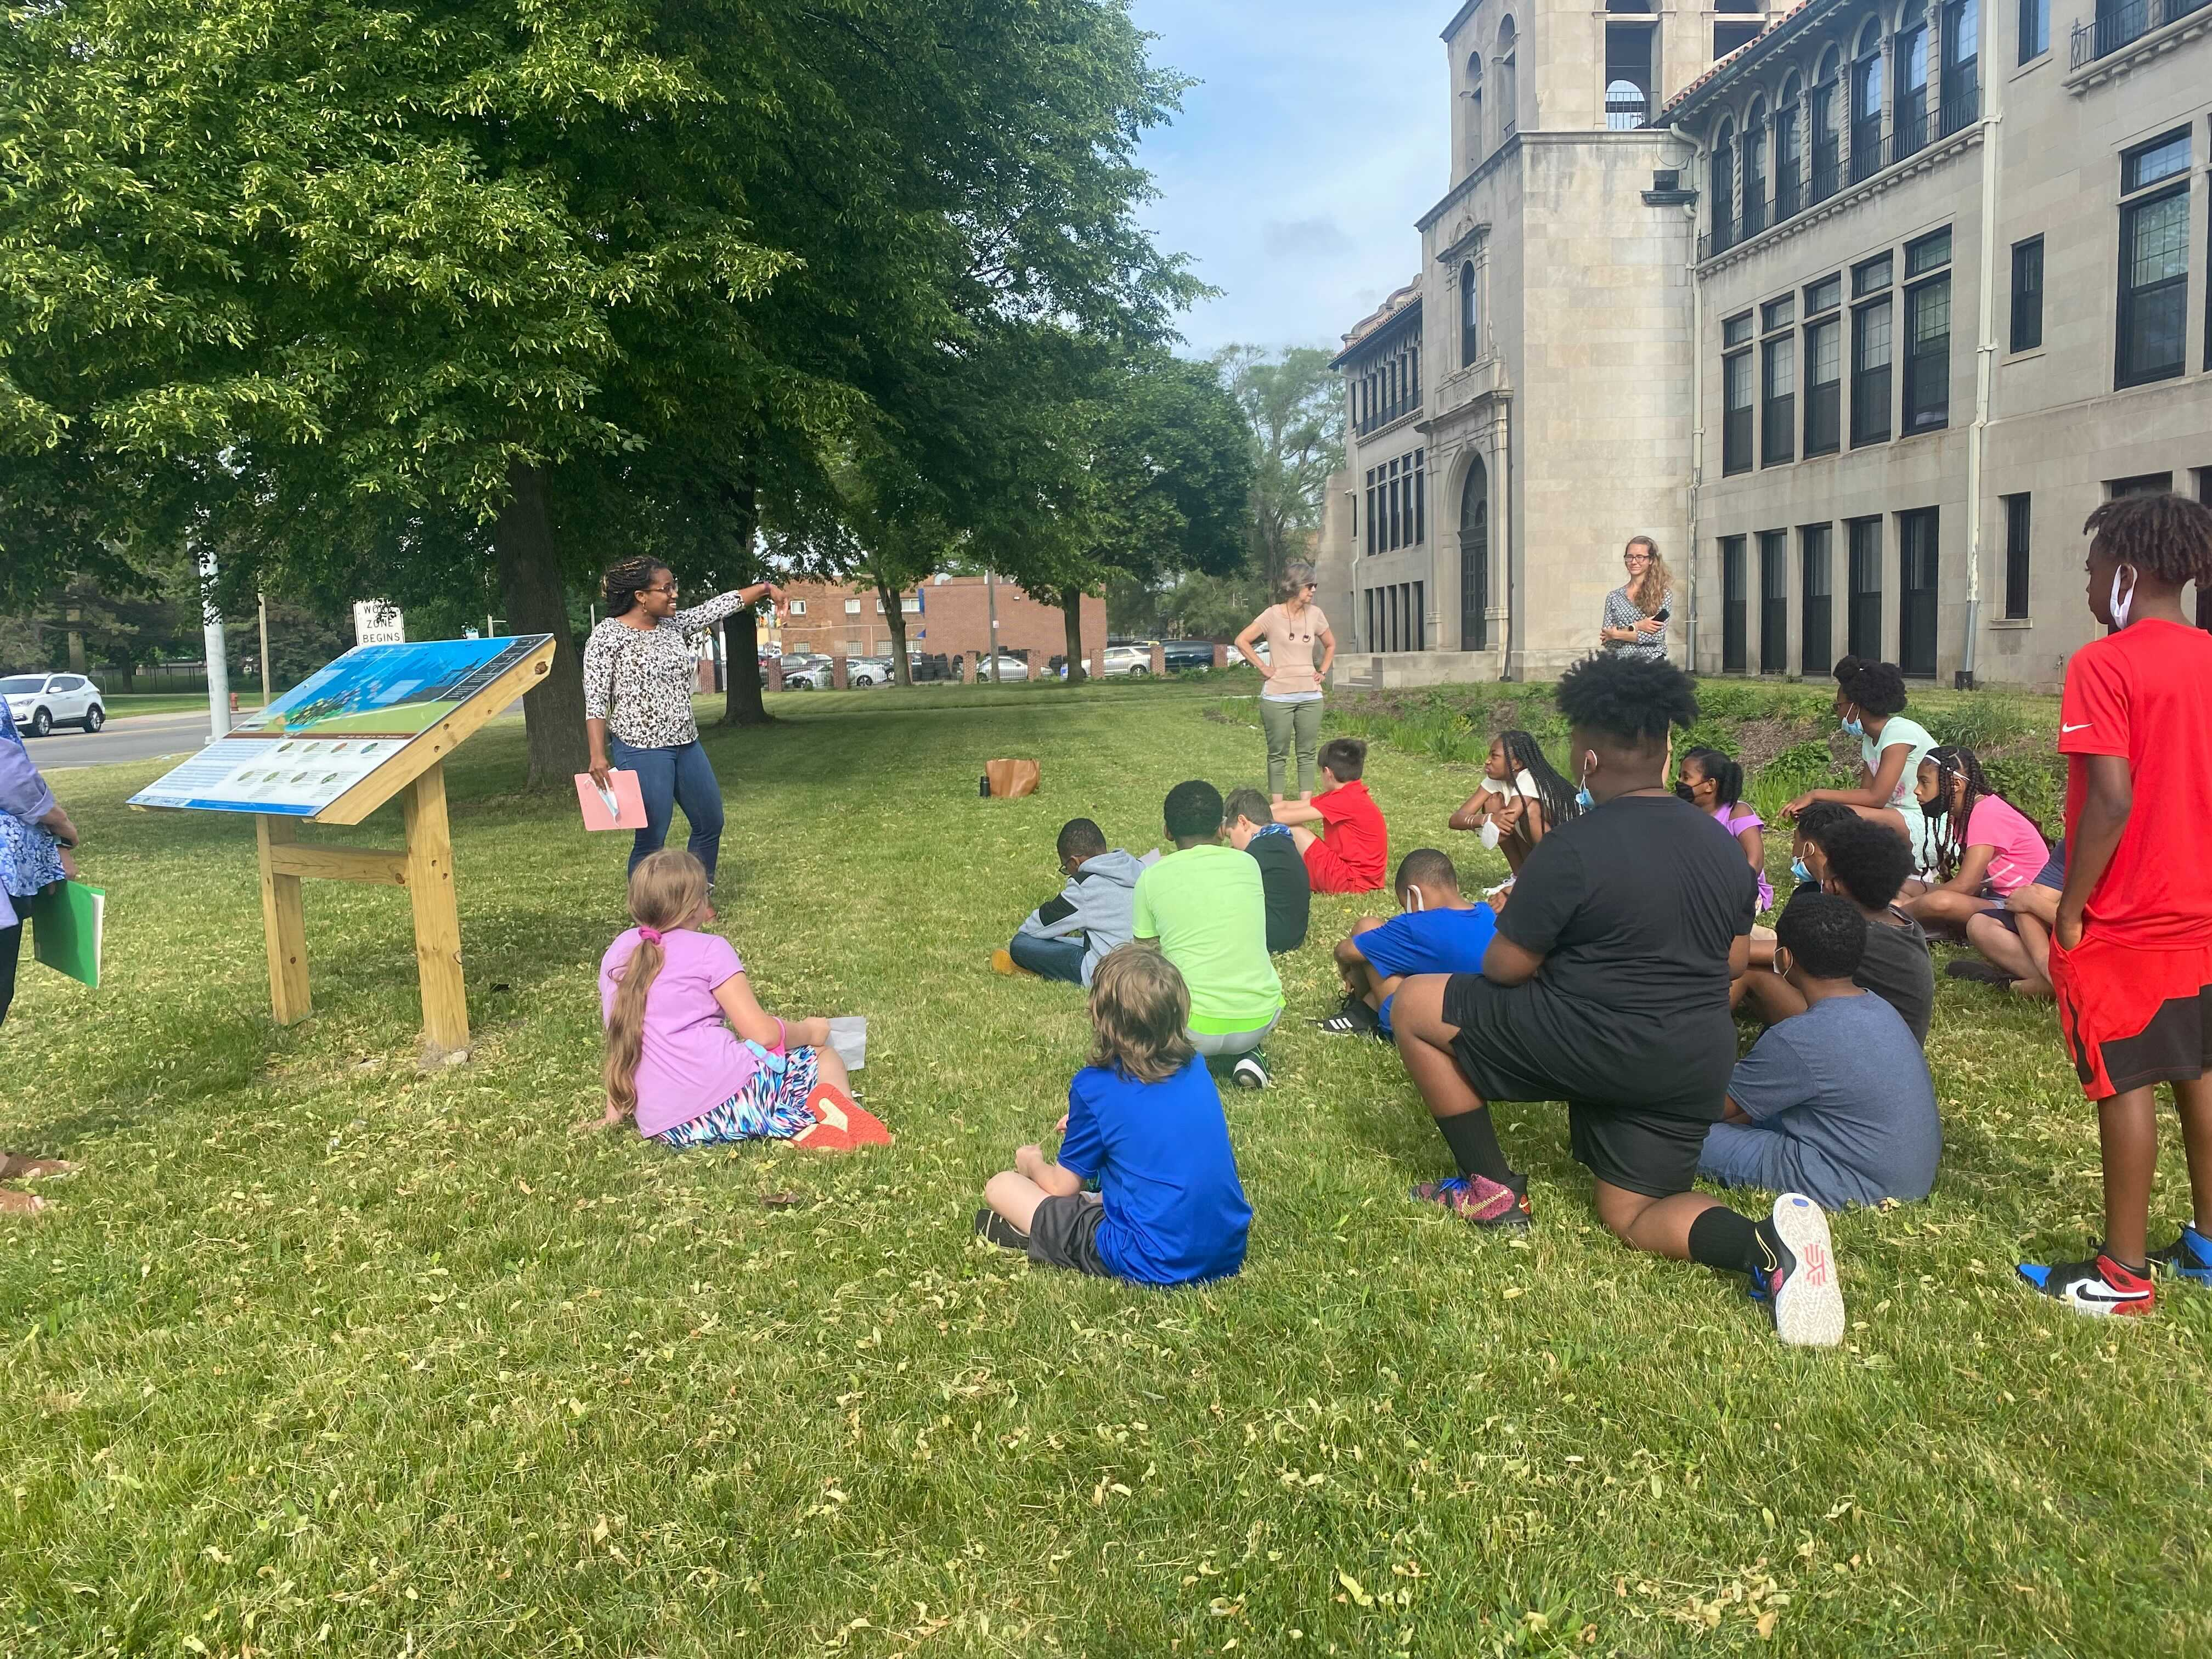 Kids sit on the grass in front of a representative from the National Wildlife Federation as she congratulates them for their work and presents them with a certificate.